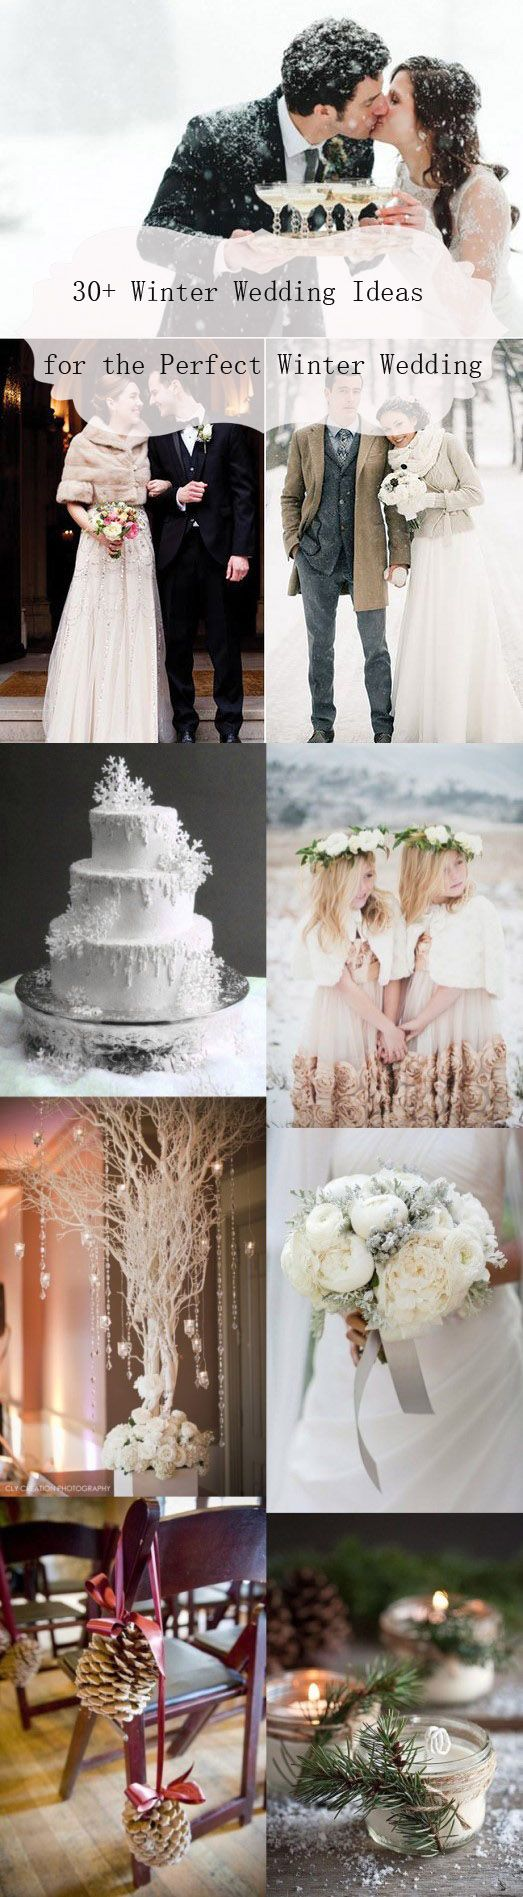 30+ Winter Wedding Ideas for the Perfect Winter Weddings | http://www.weddinginclude.com/2016/07/winter-wedding-ideas-for-the-perfect-winter-weddings/